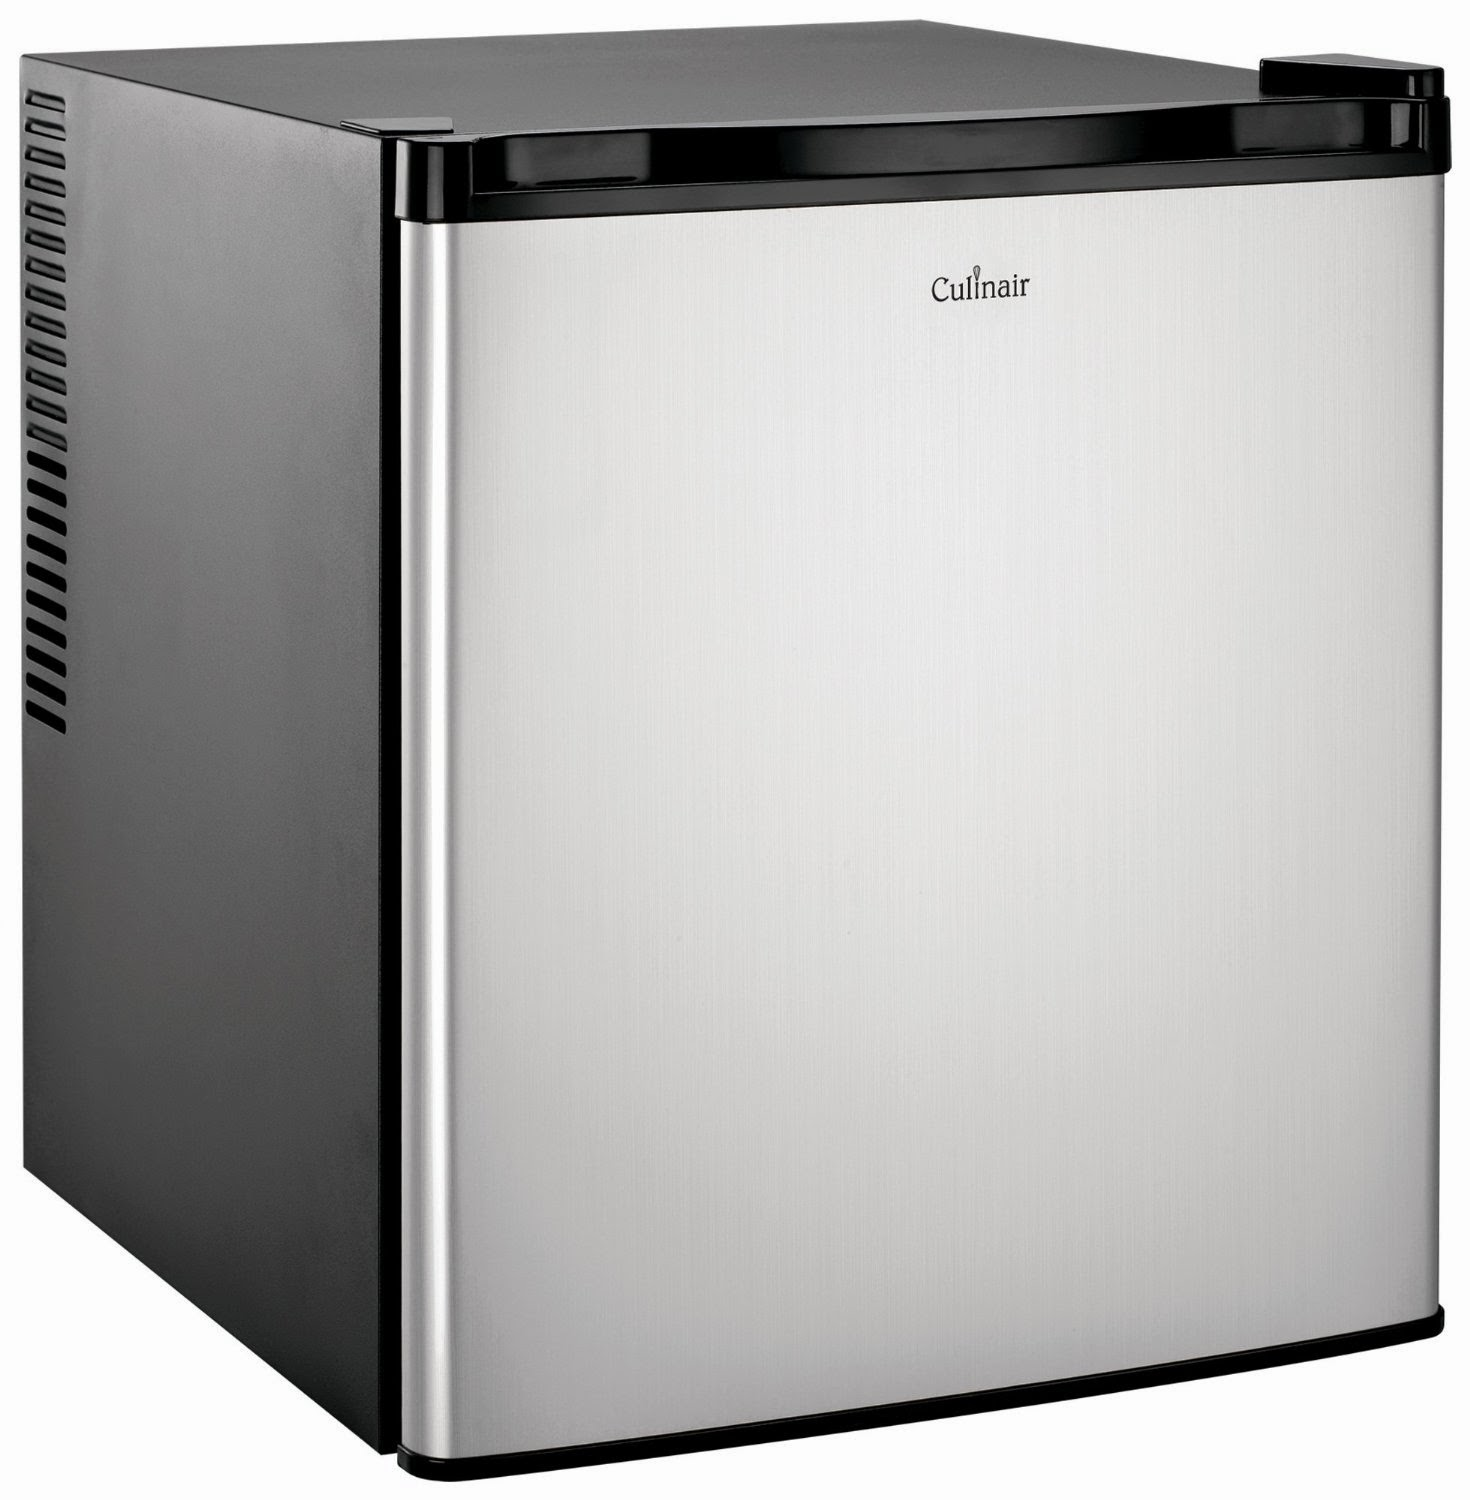 mini fridge with lock silver and black culinair 1 7 cf compact refrigerators